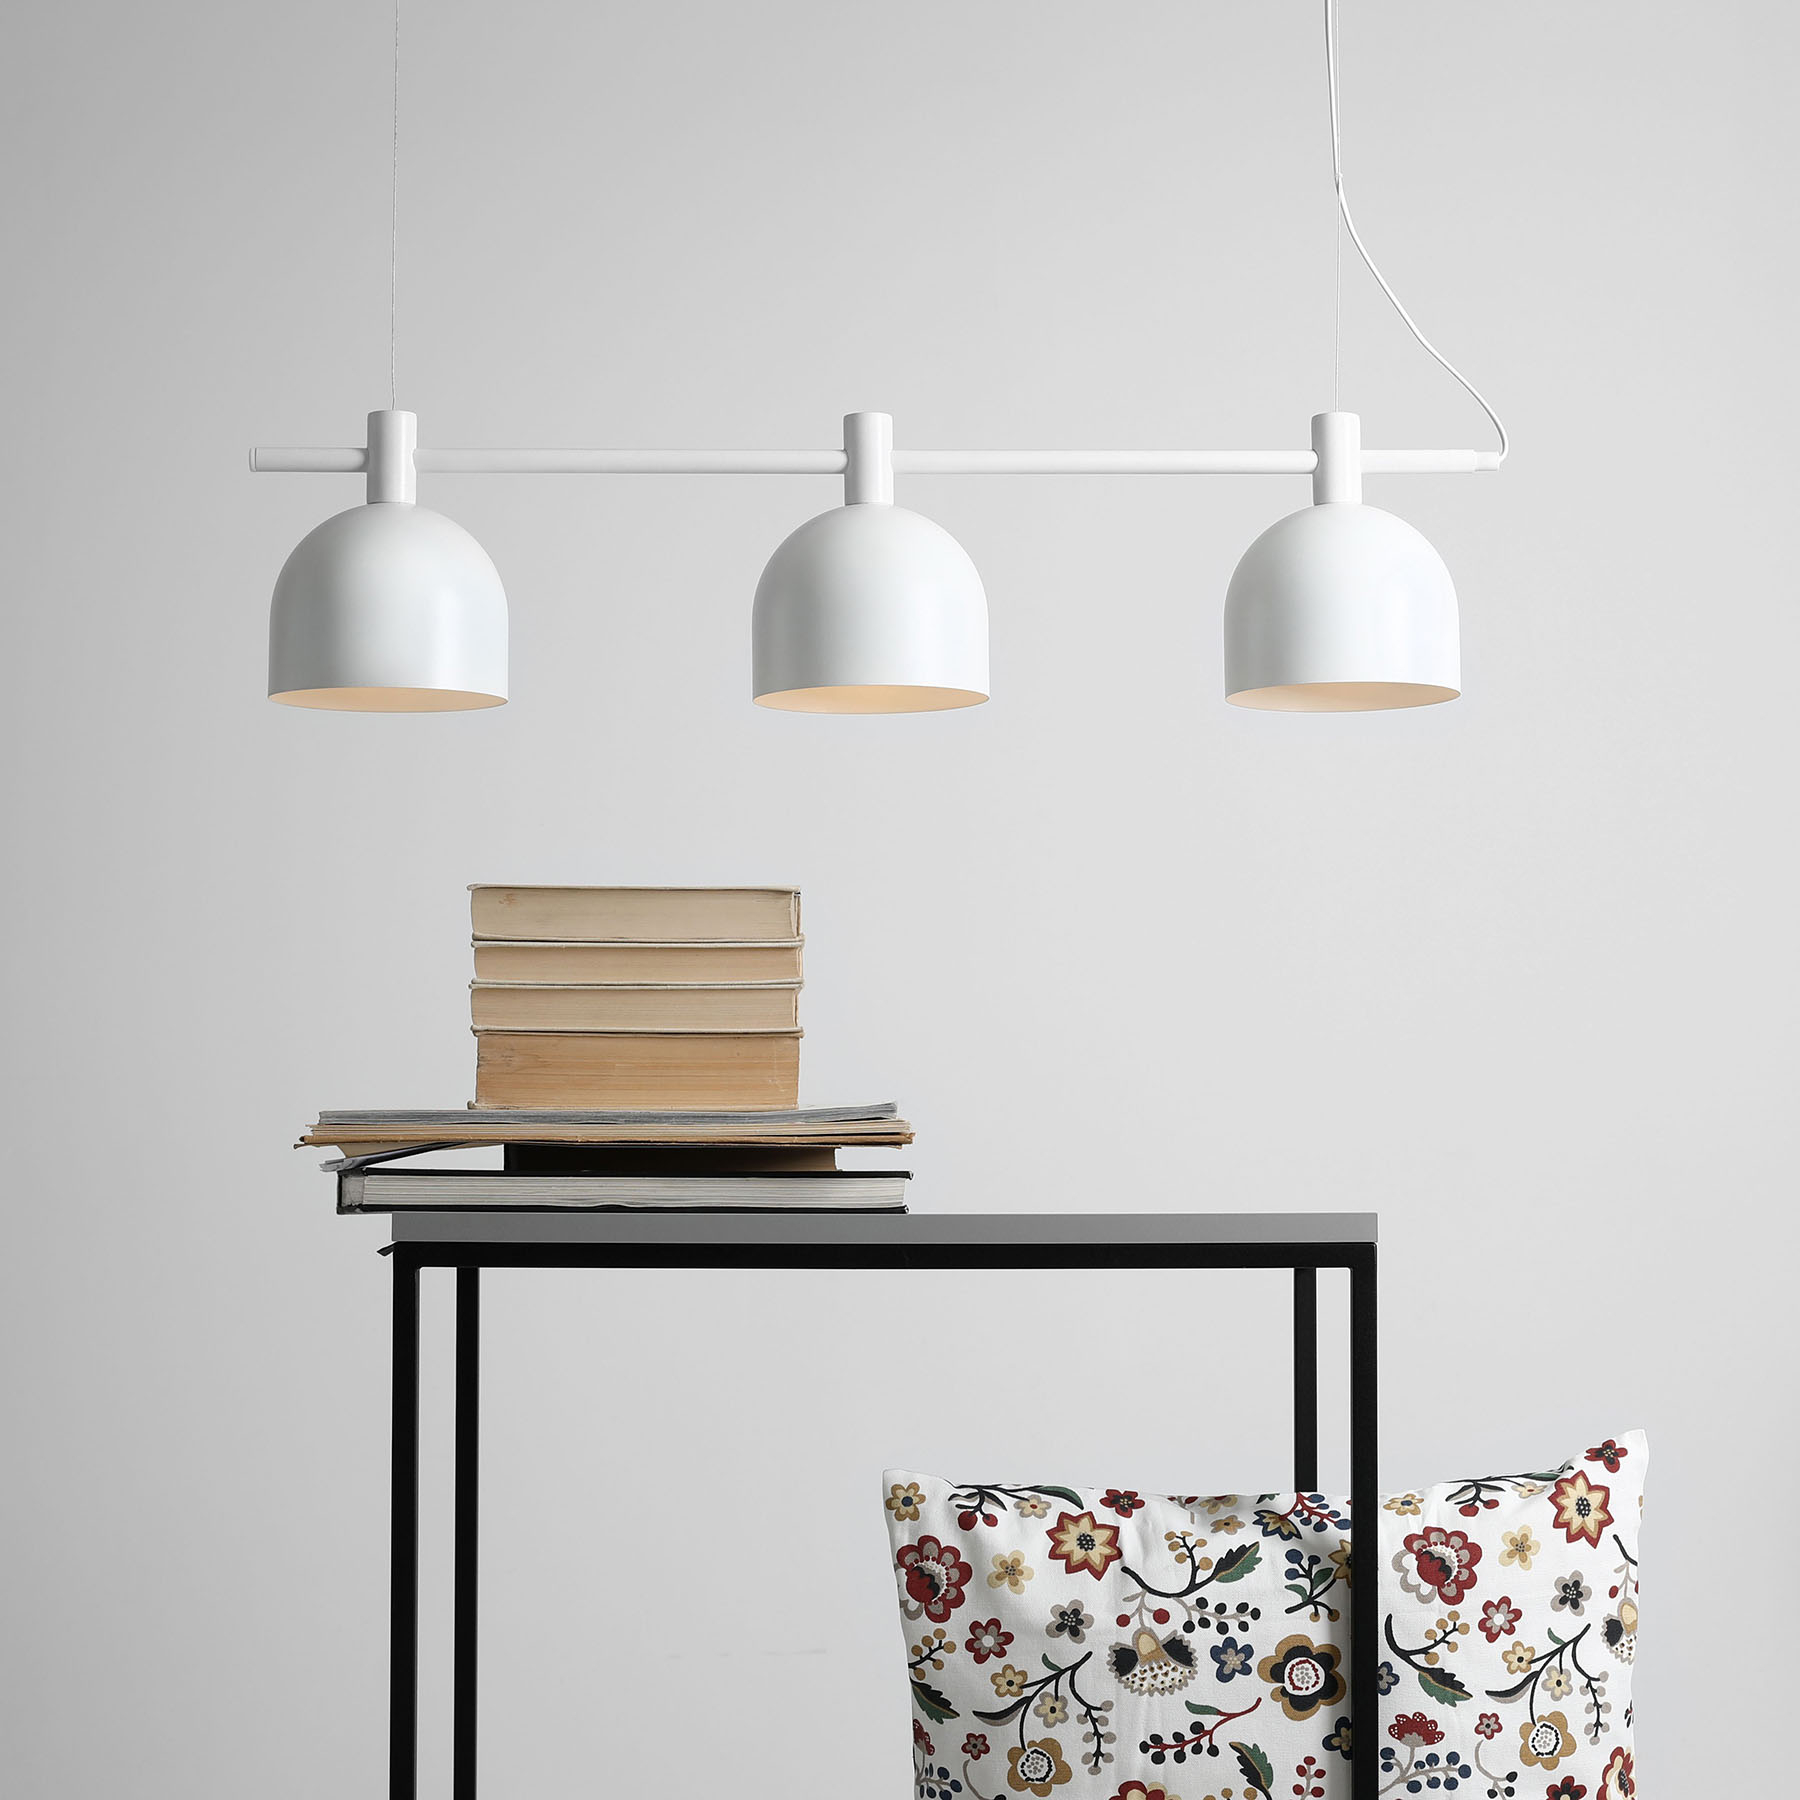 hanglamp 976, 3-lamps, wit